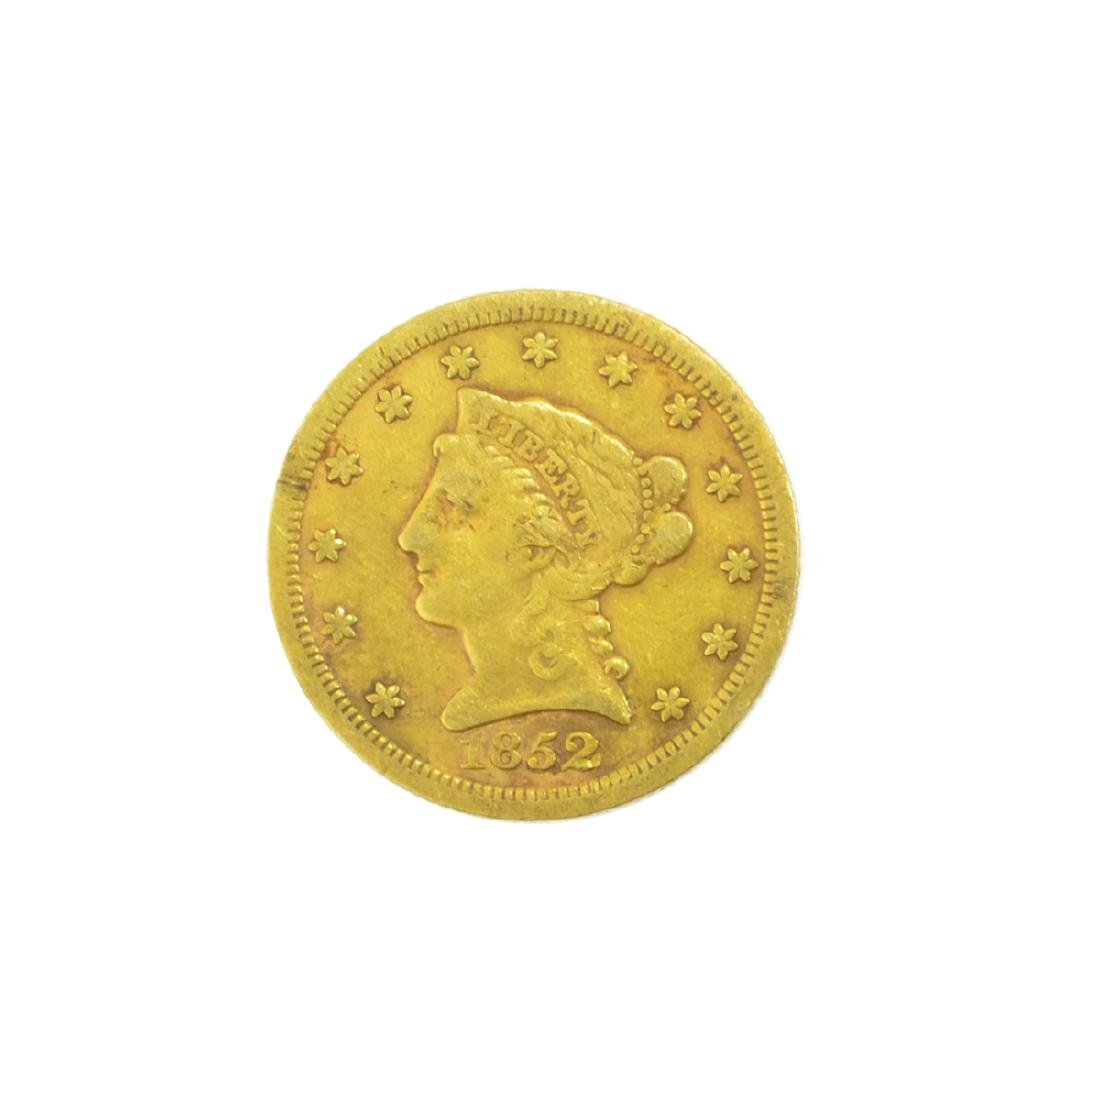 *1852 $2.50 U.S. Liberty Head Gold Coin (JG-MRT)